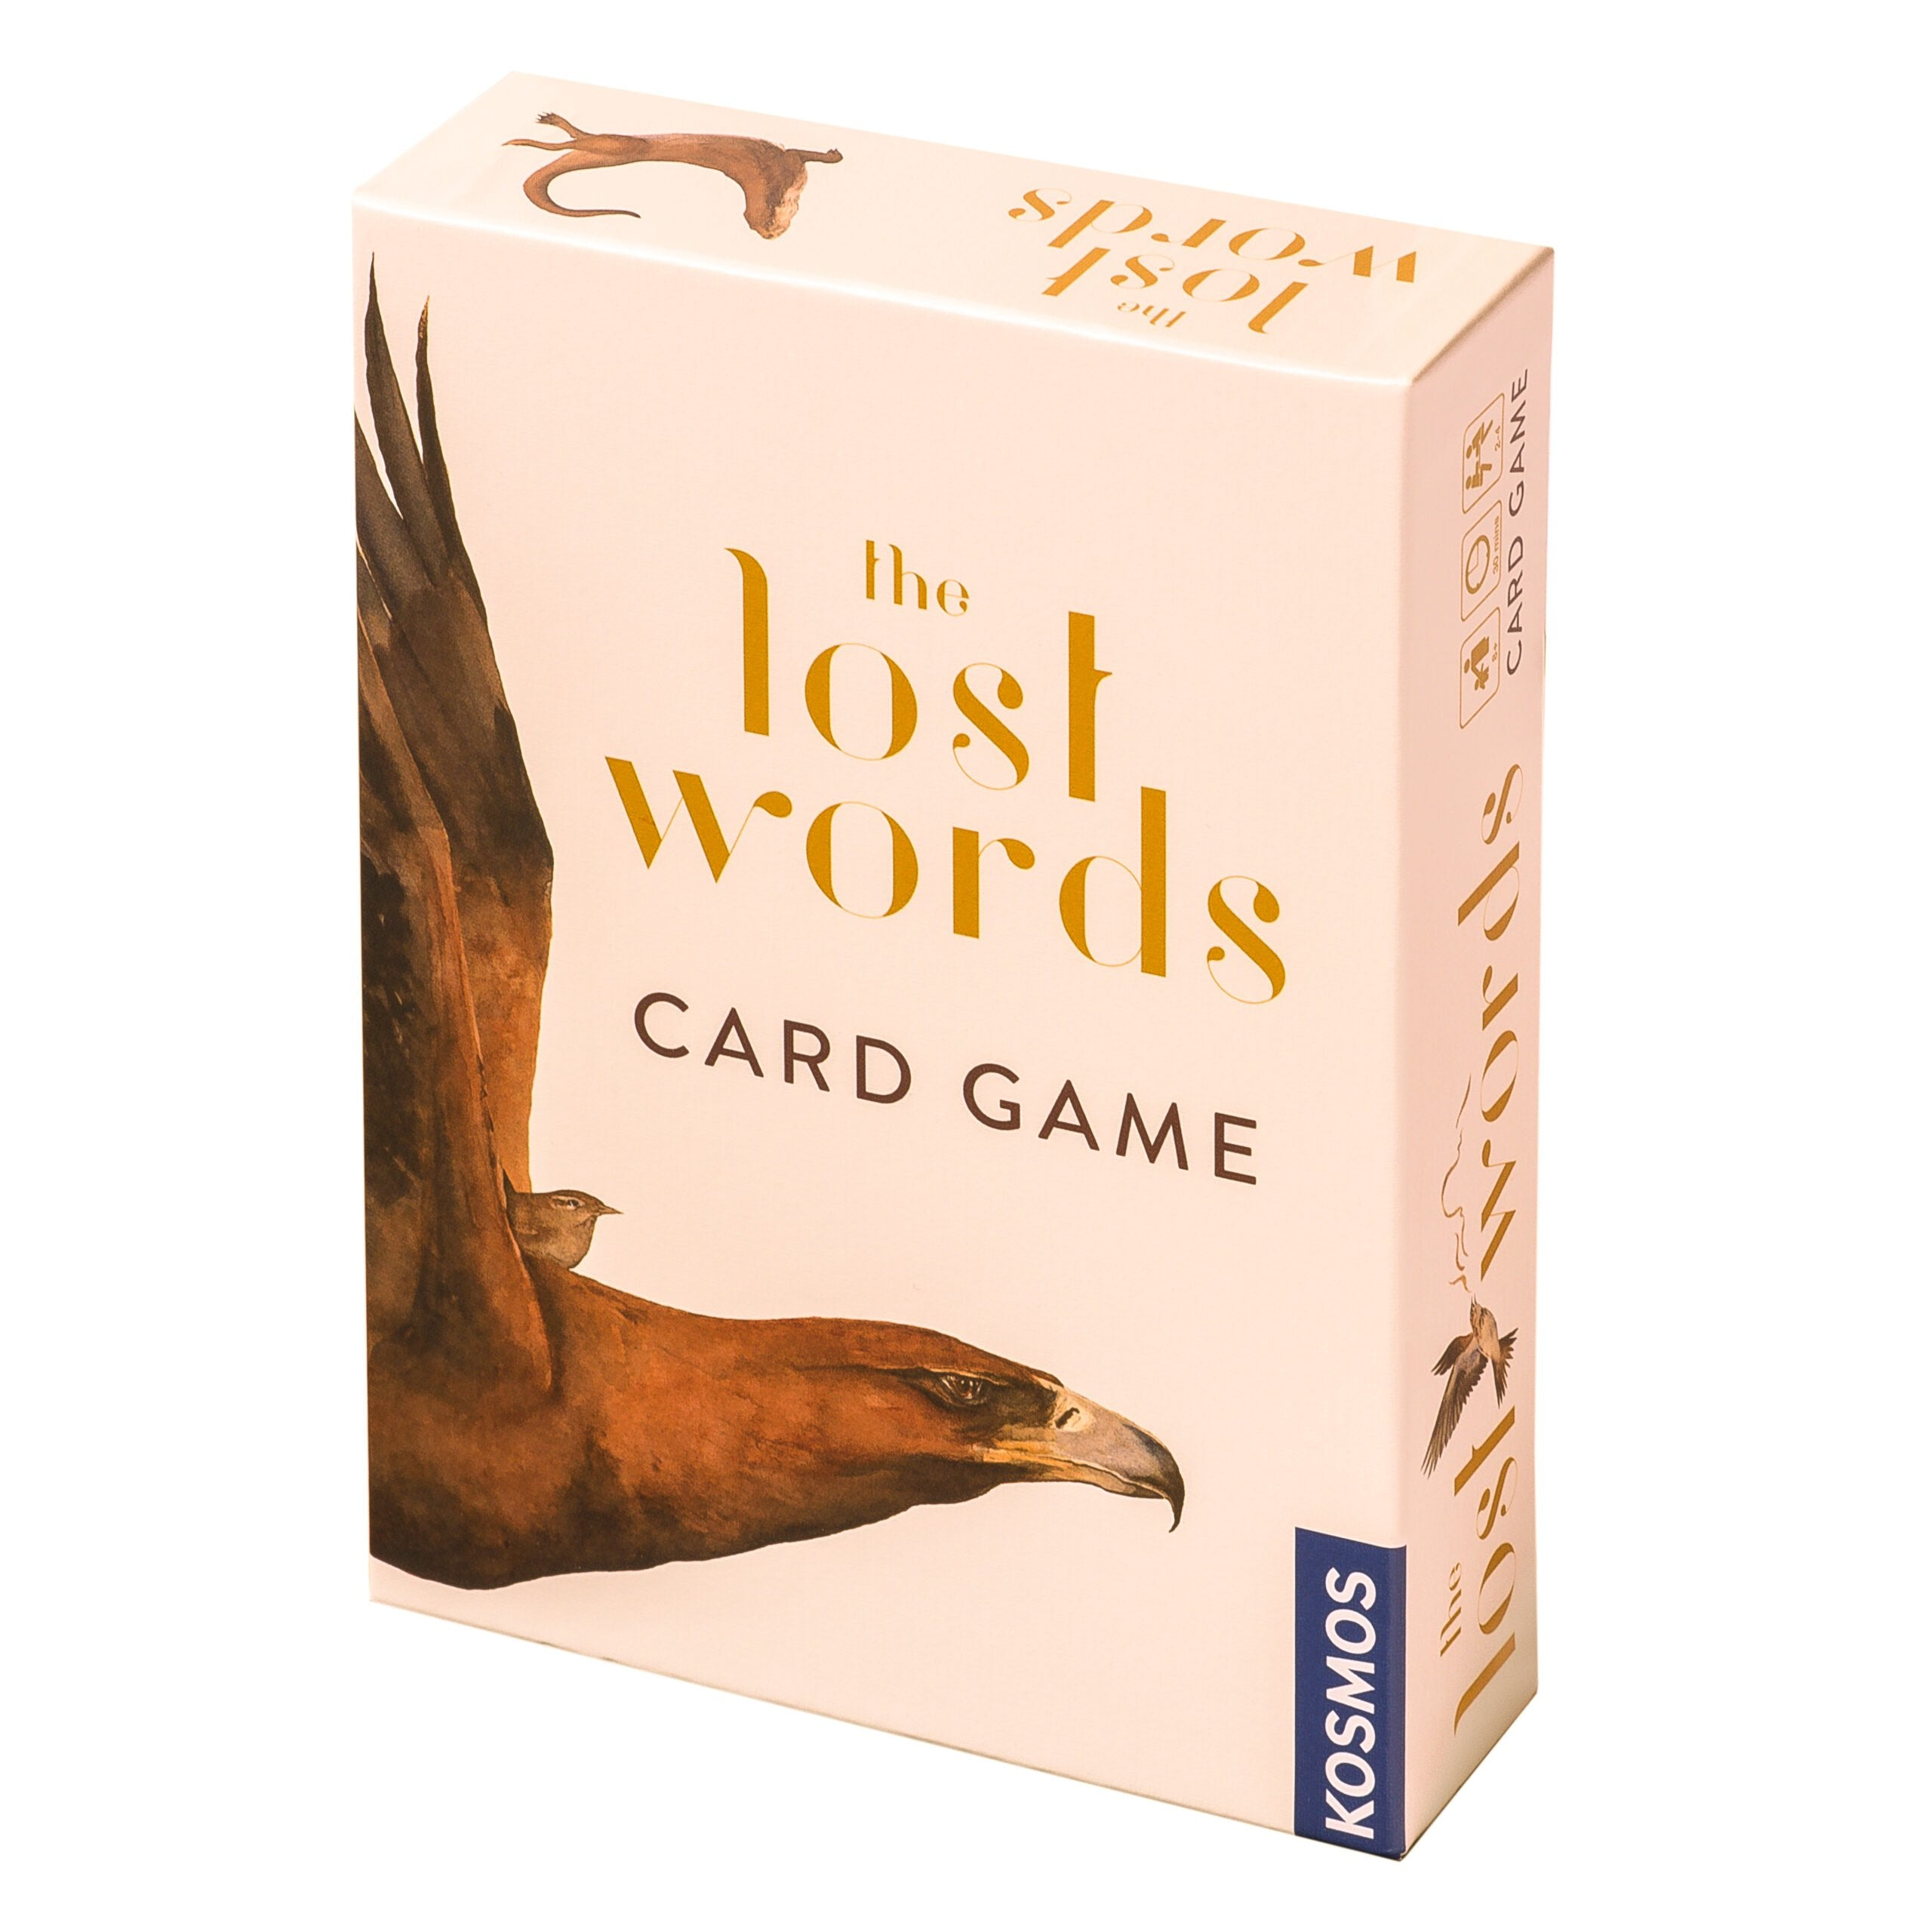 The Lost Words - Card Game, front of box